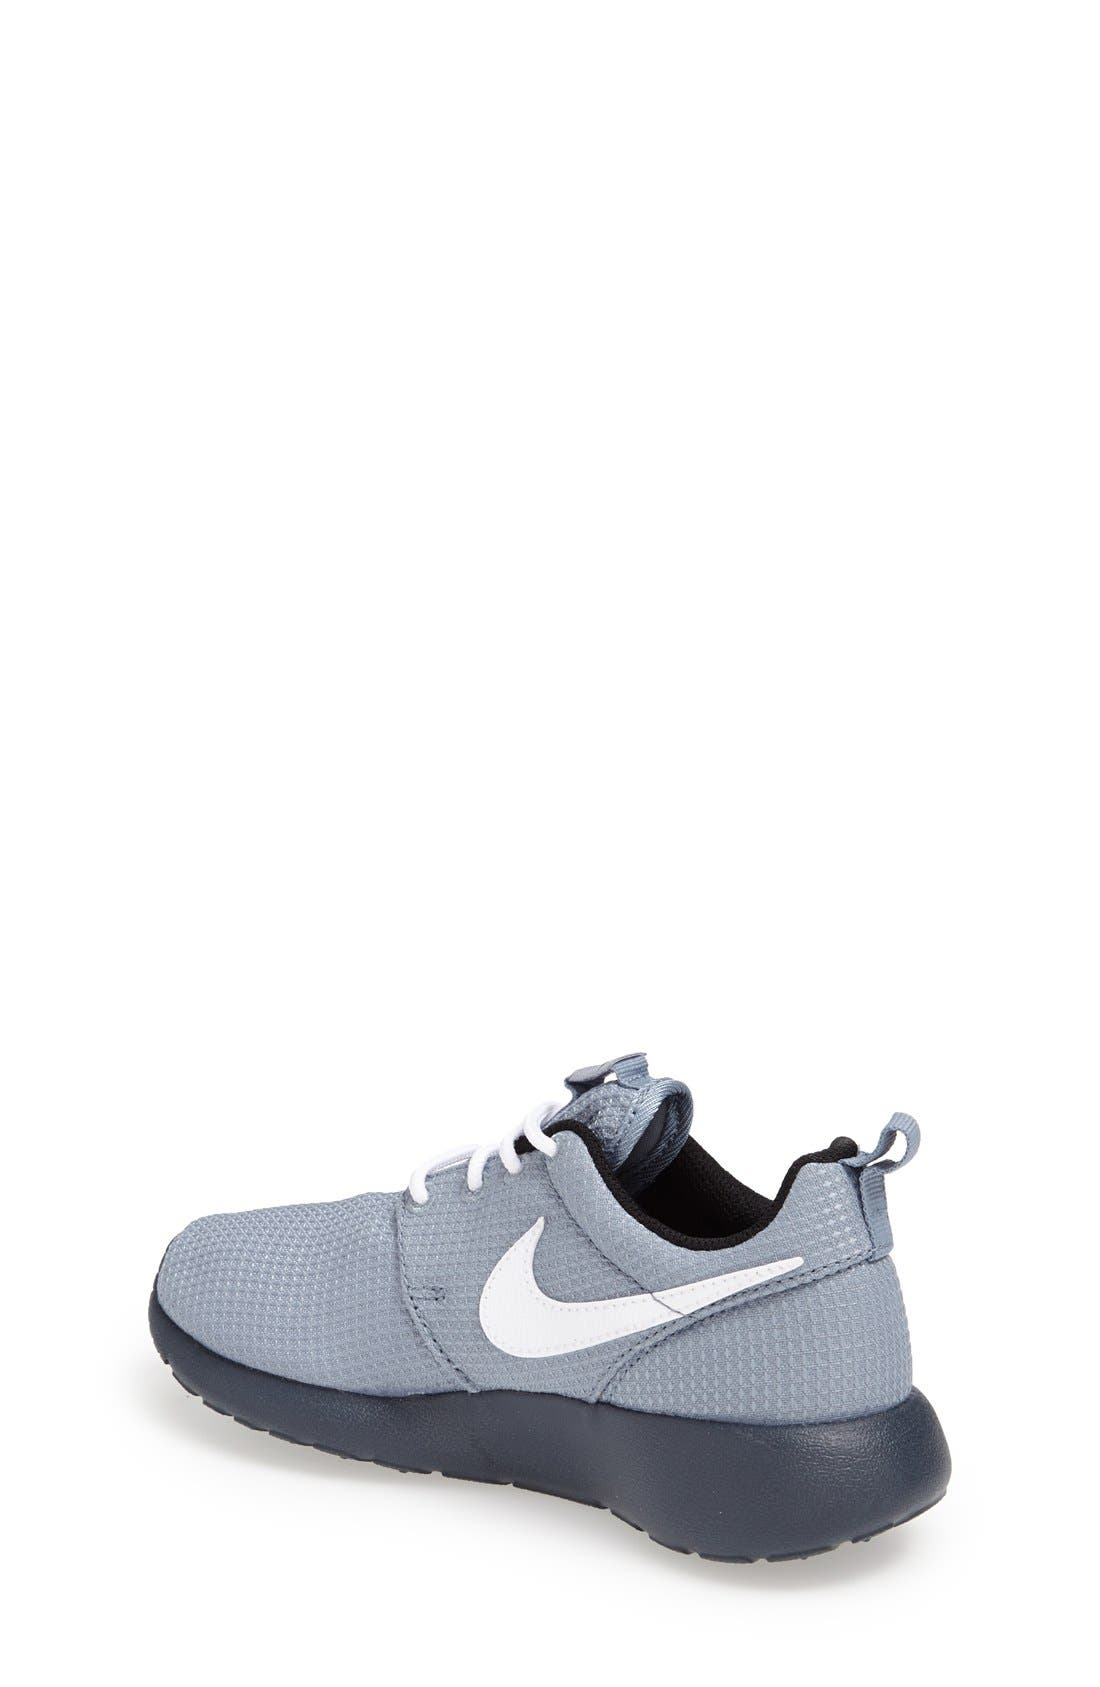 'Roshe Run' Sneaker,                             Alternate thumbnail 76, color,